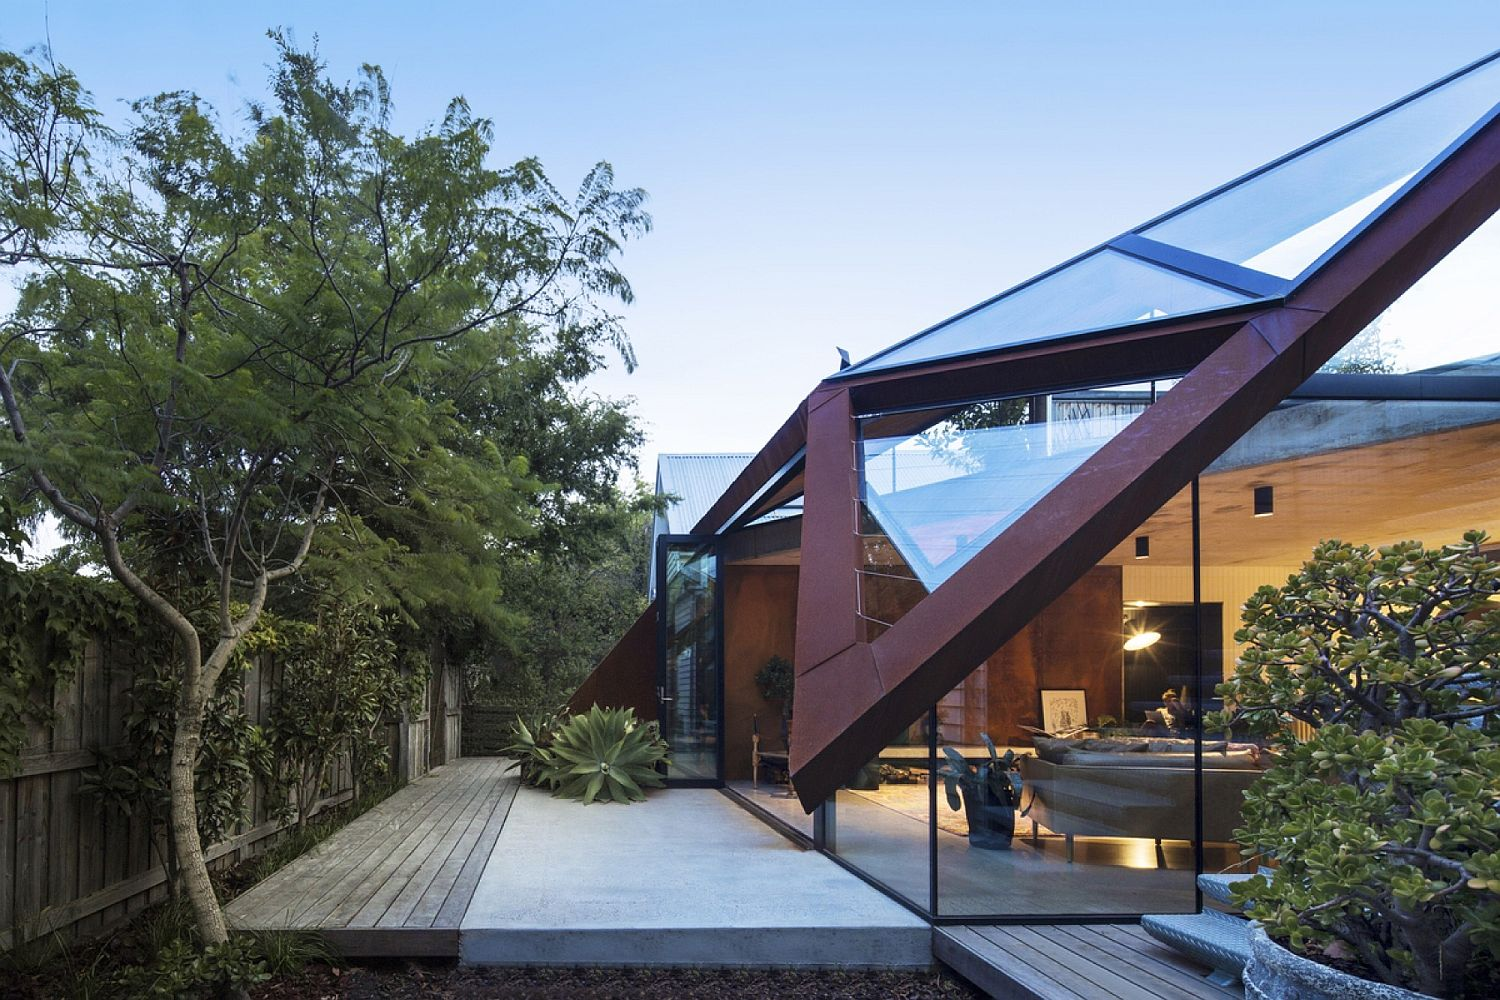 Geometrc-design-of-the-glass-and-metal-roof